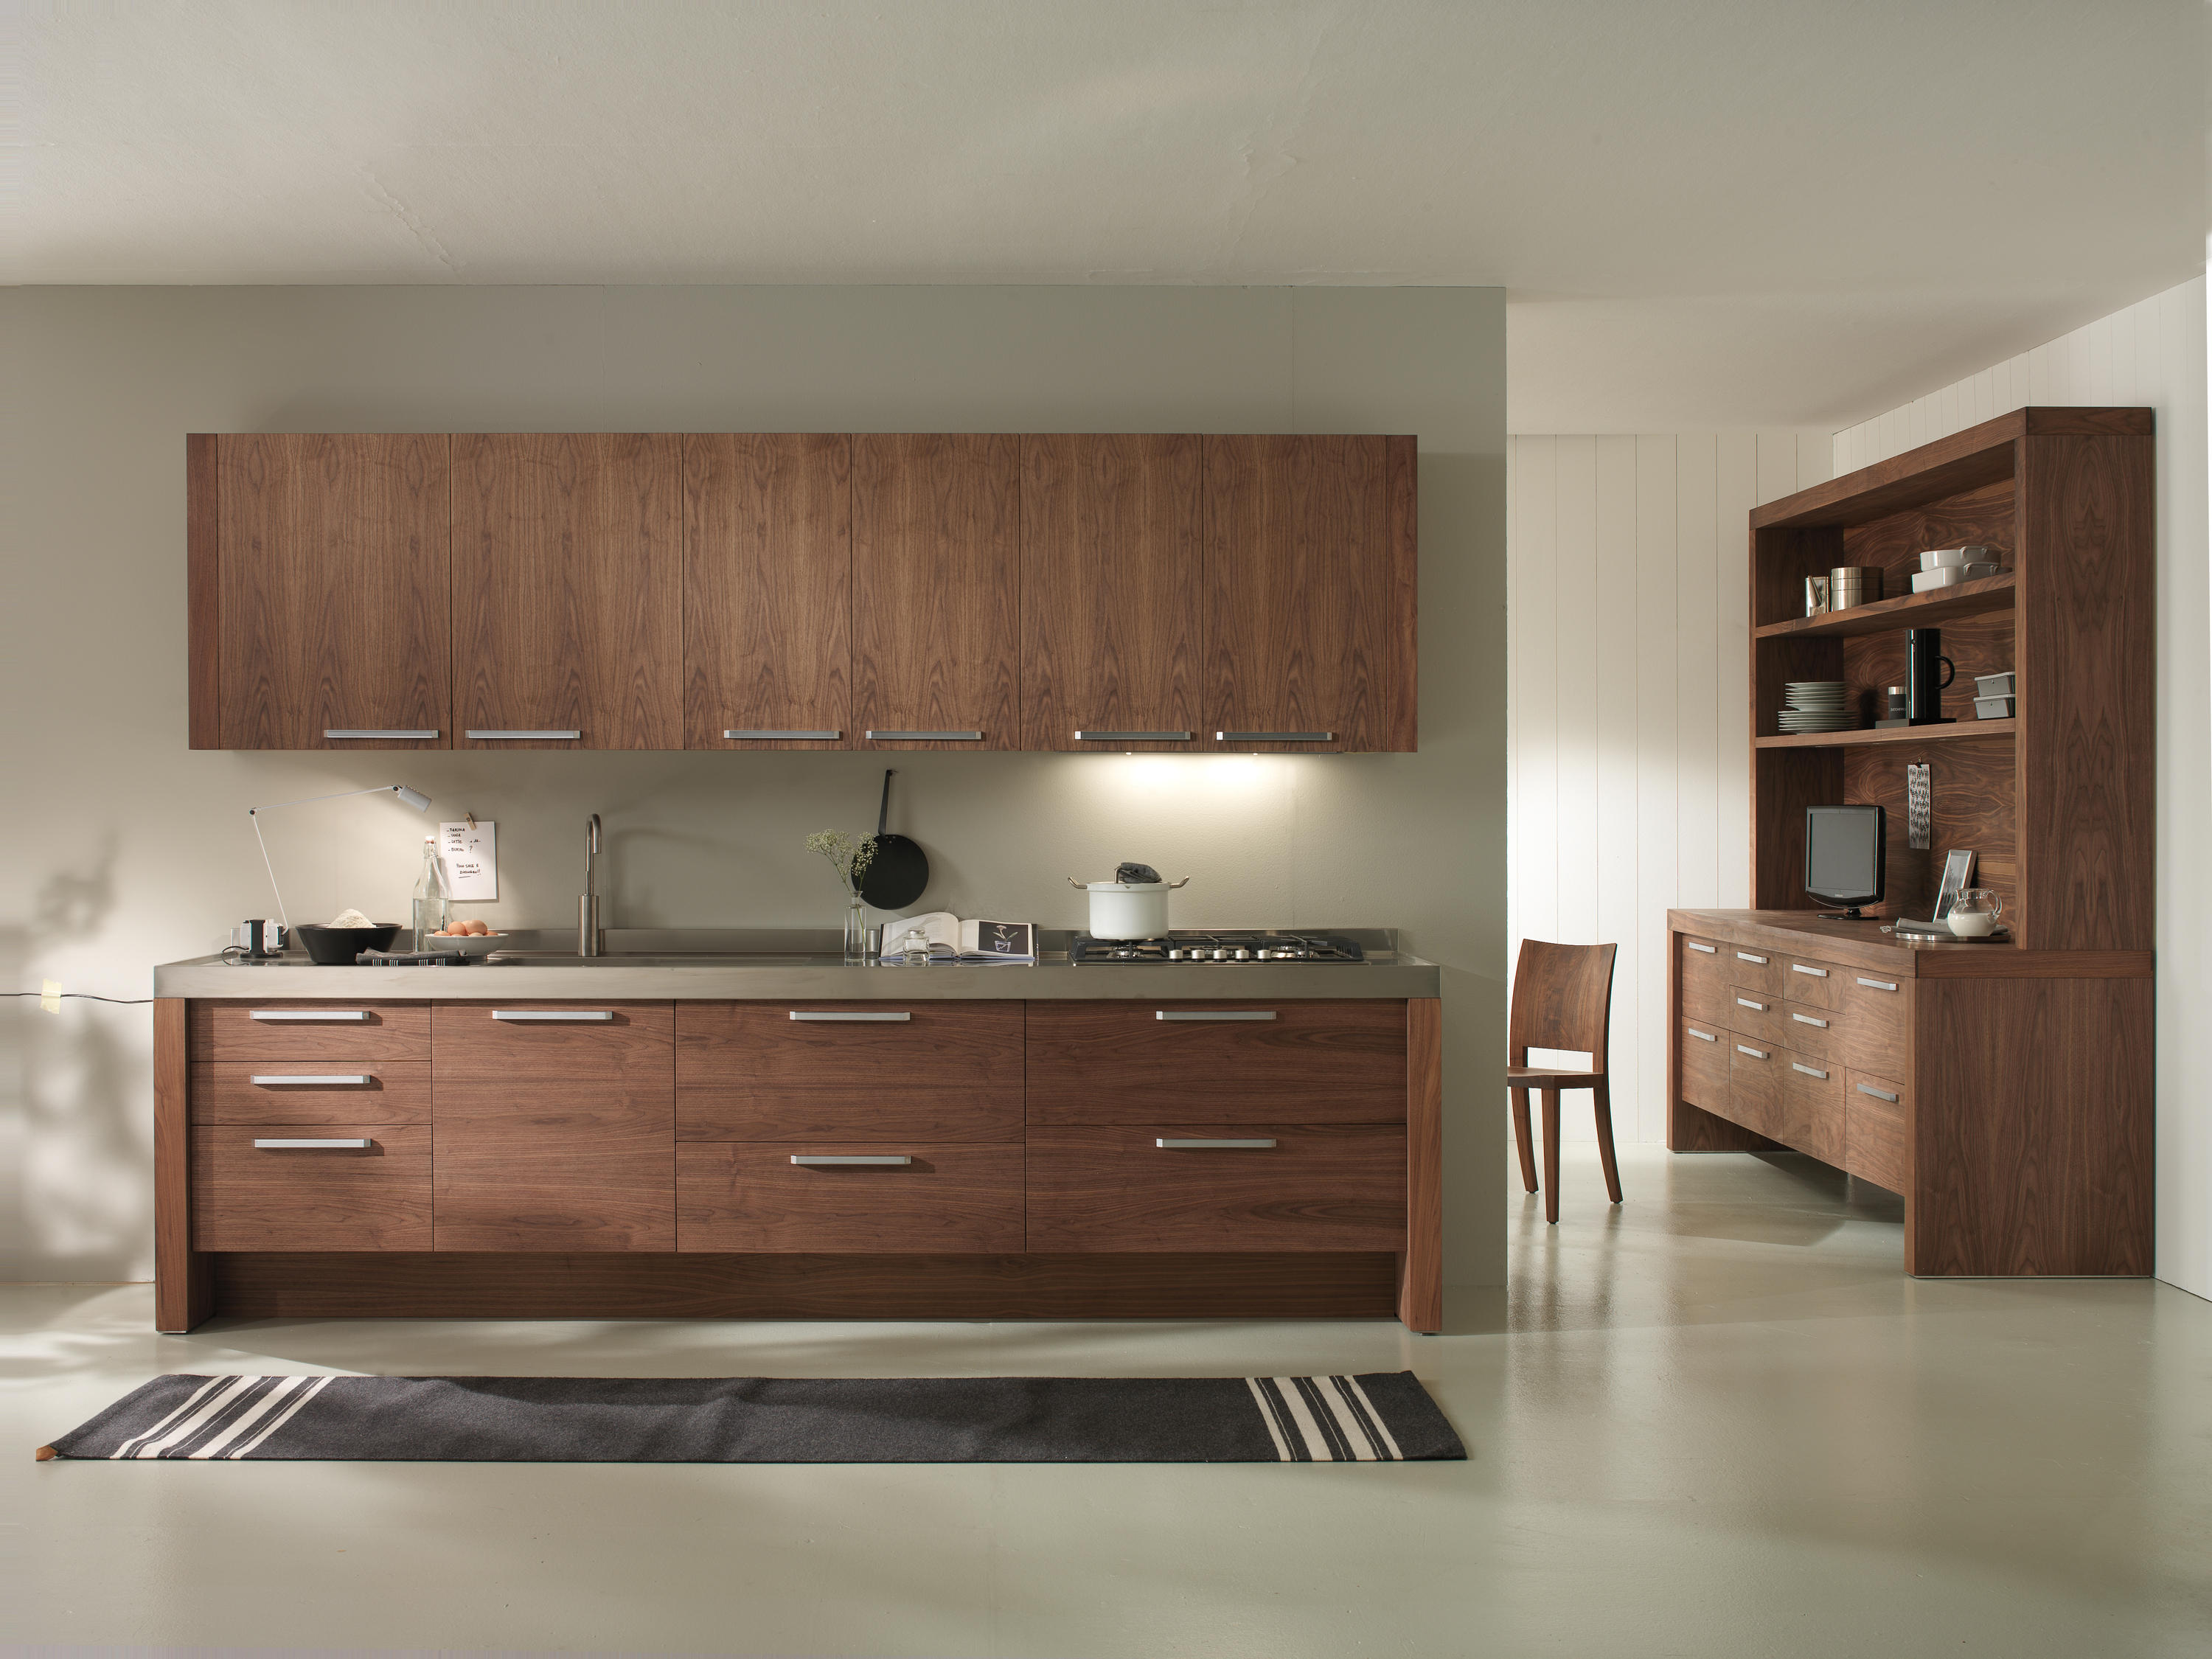 Life hanging wall units kitchen cabinets from riva for Lifestyle kitchen units